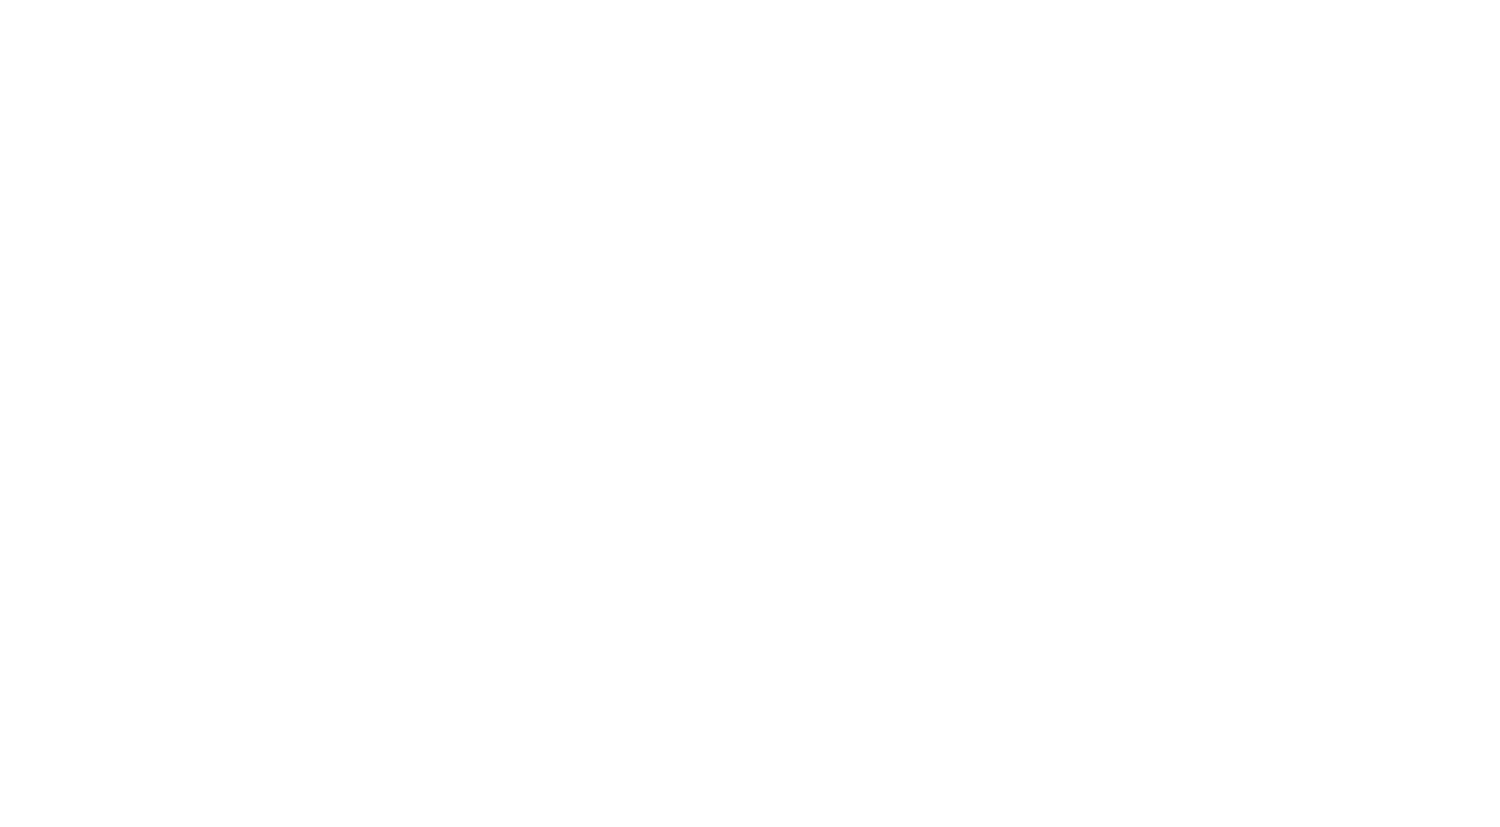 Nobel Insurance Services